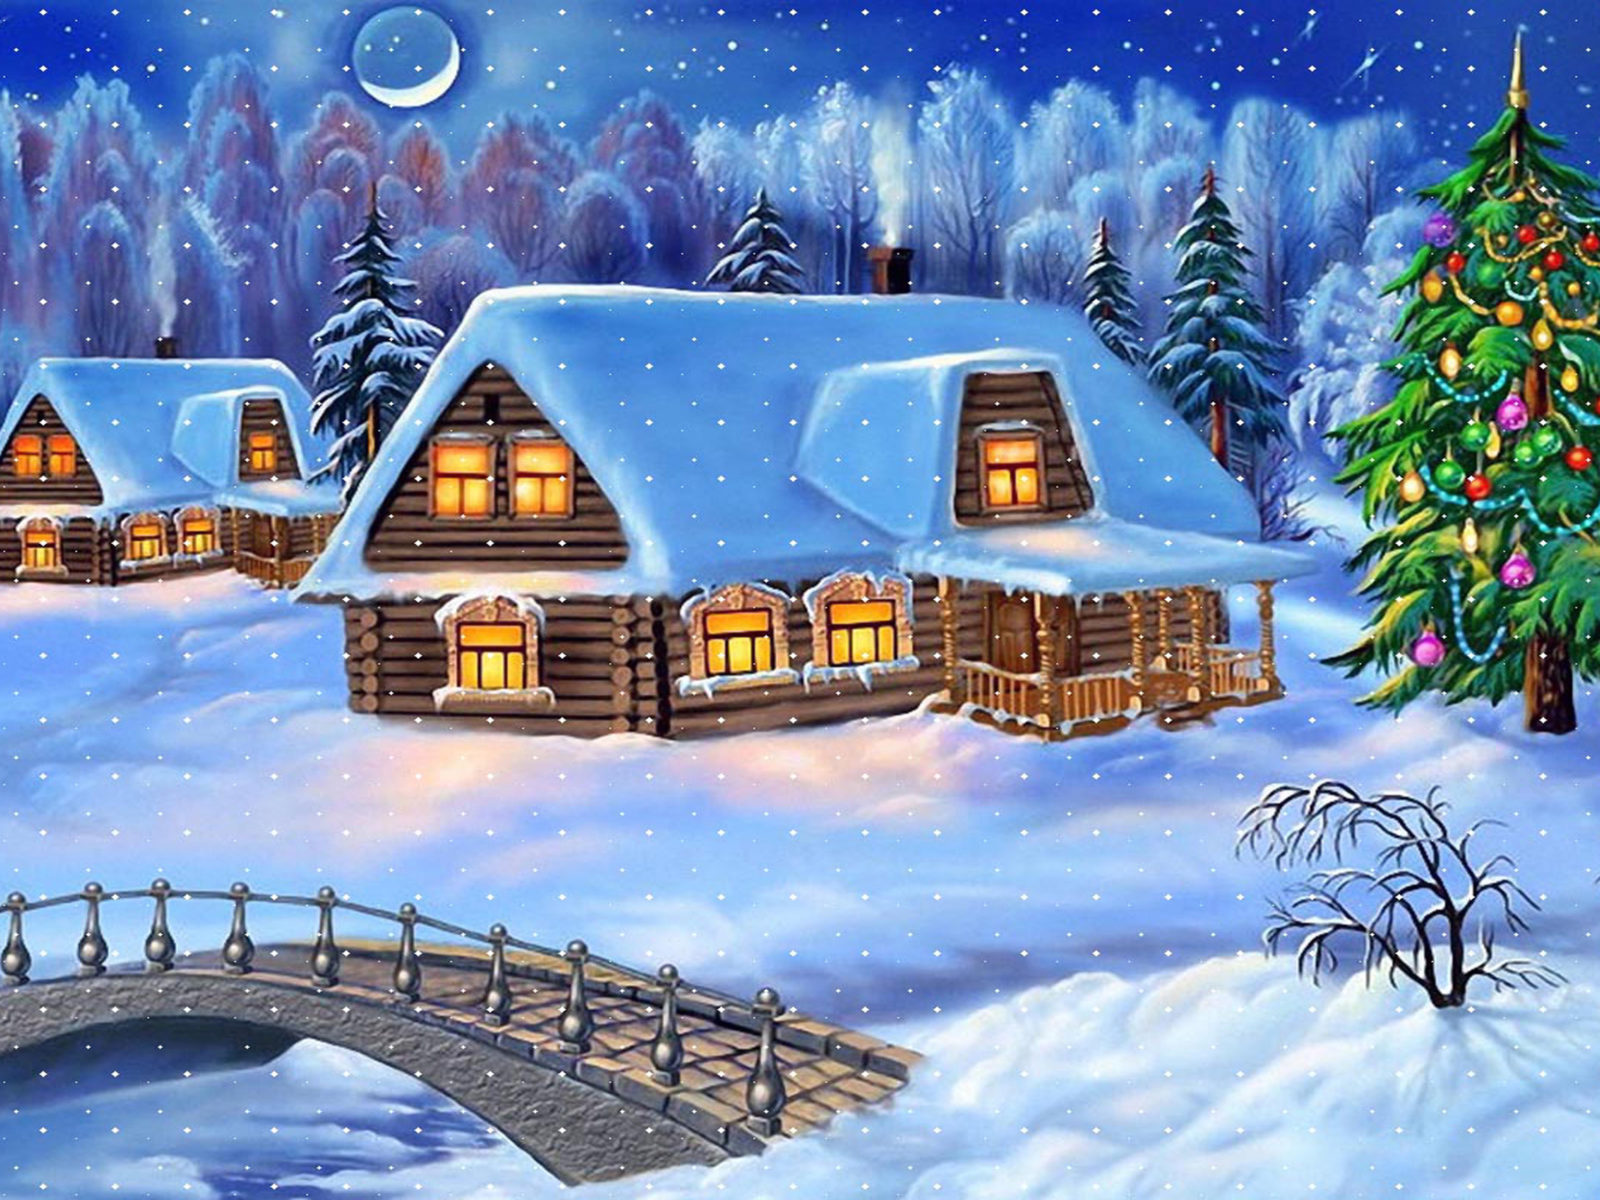 Girl Live Wallpaper Free Happy New Year Christmas Tree Winter Village Houses Wooden